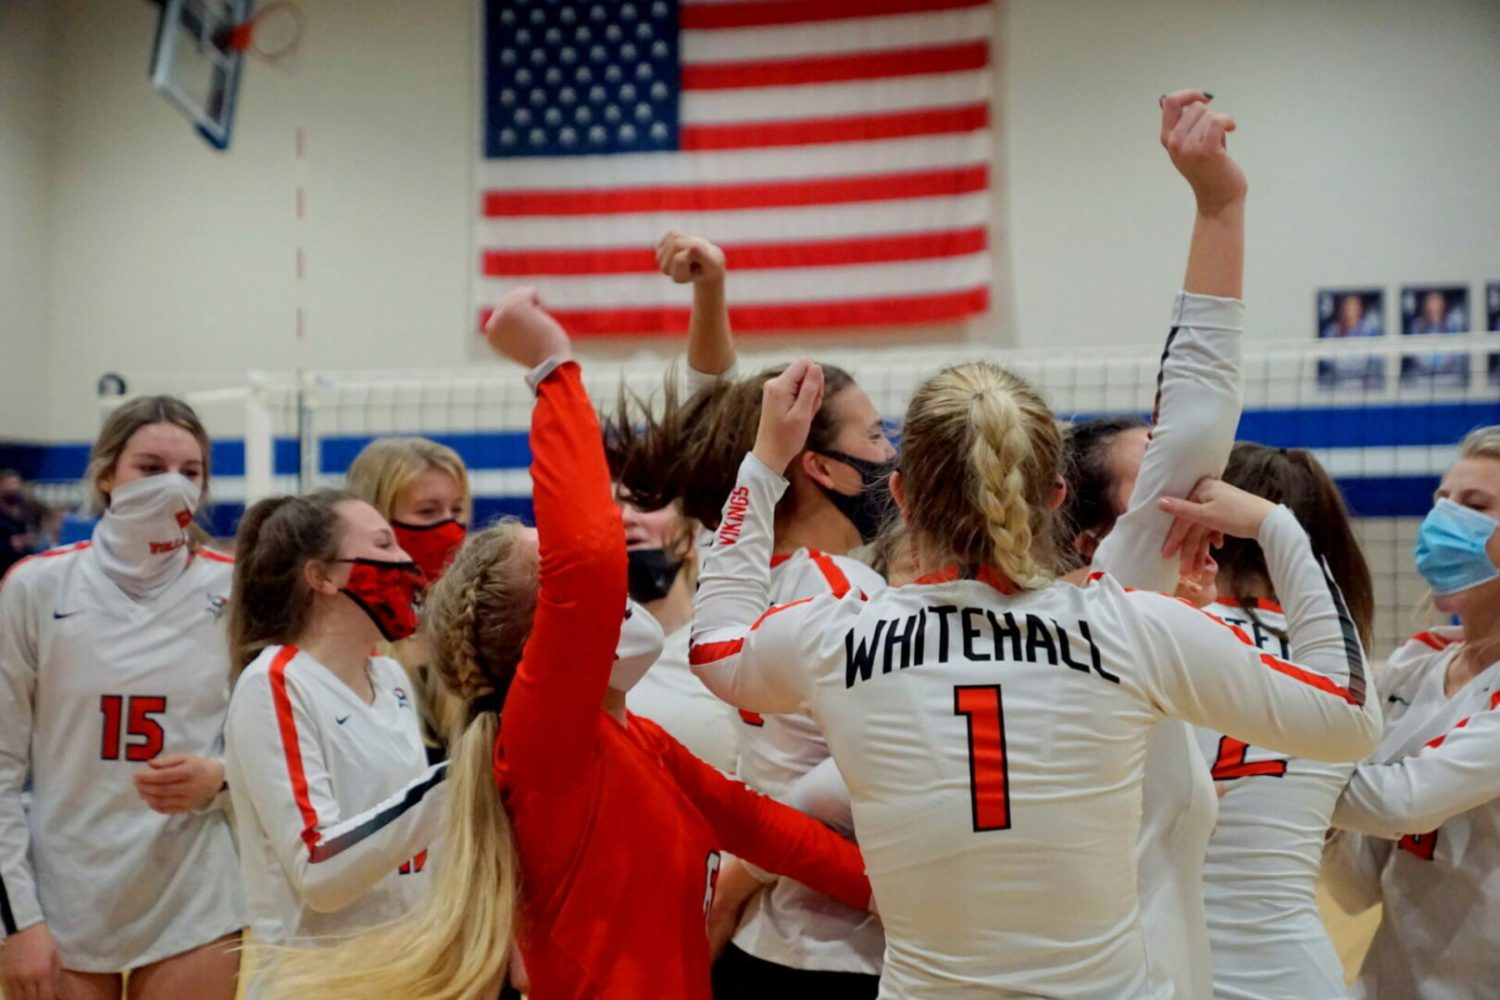 Whitehall volleyball team rises up and stuns state-ranked Montague 3-1 in Division 2 district finals